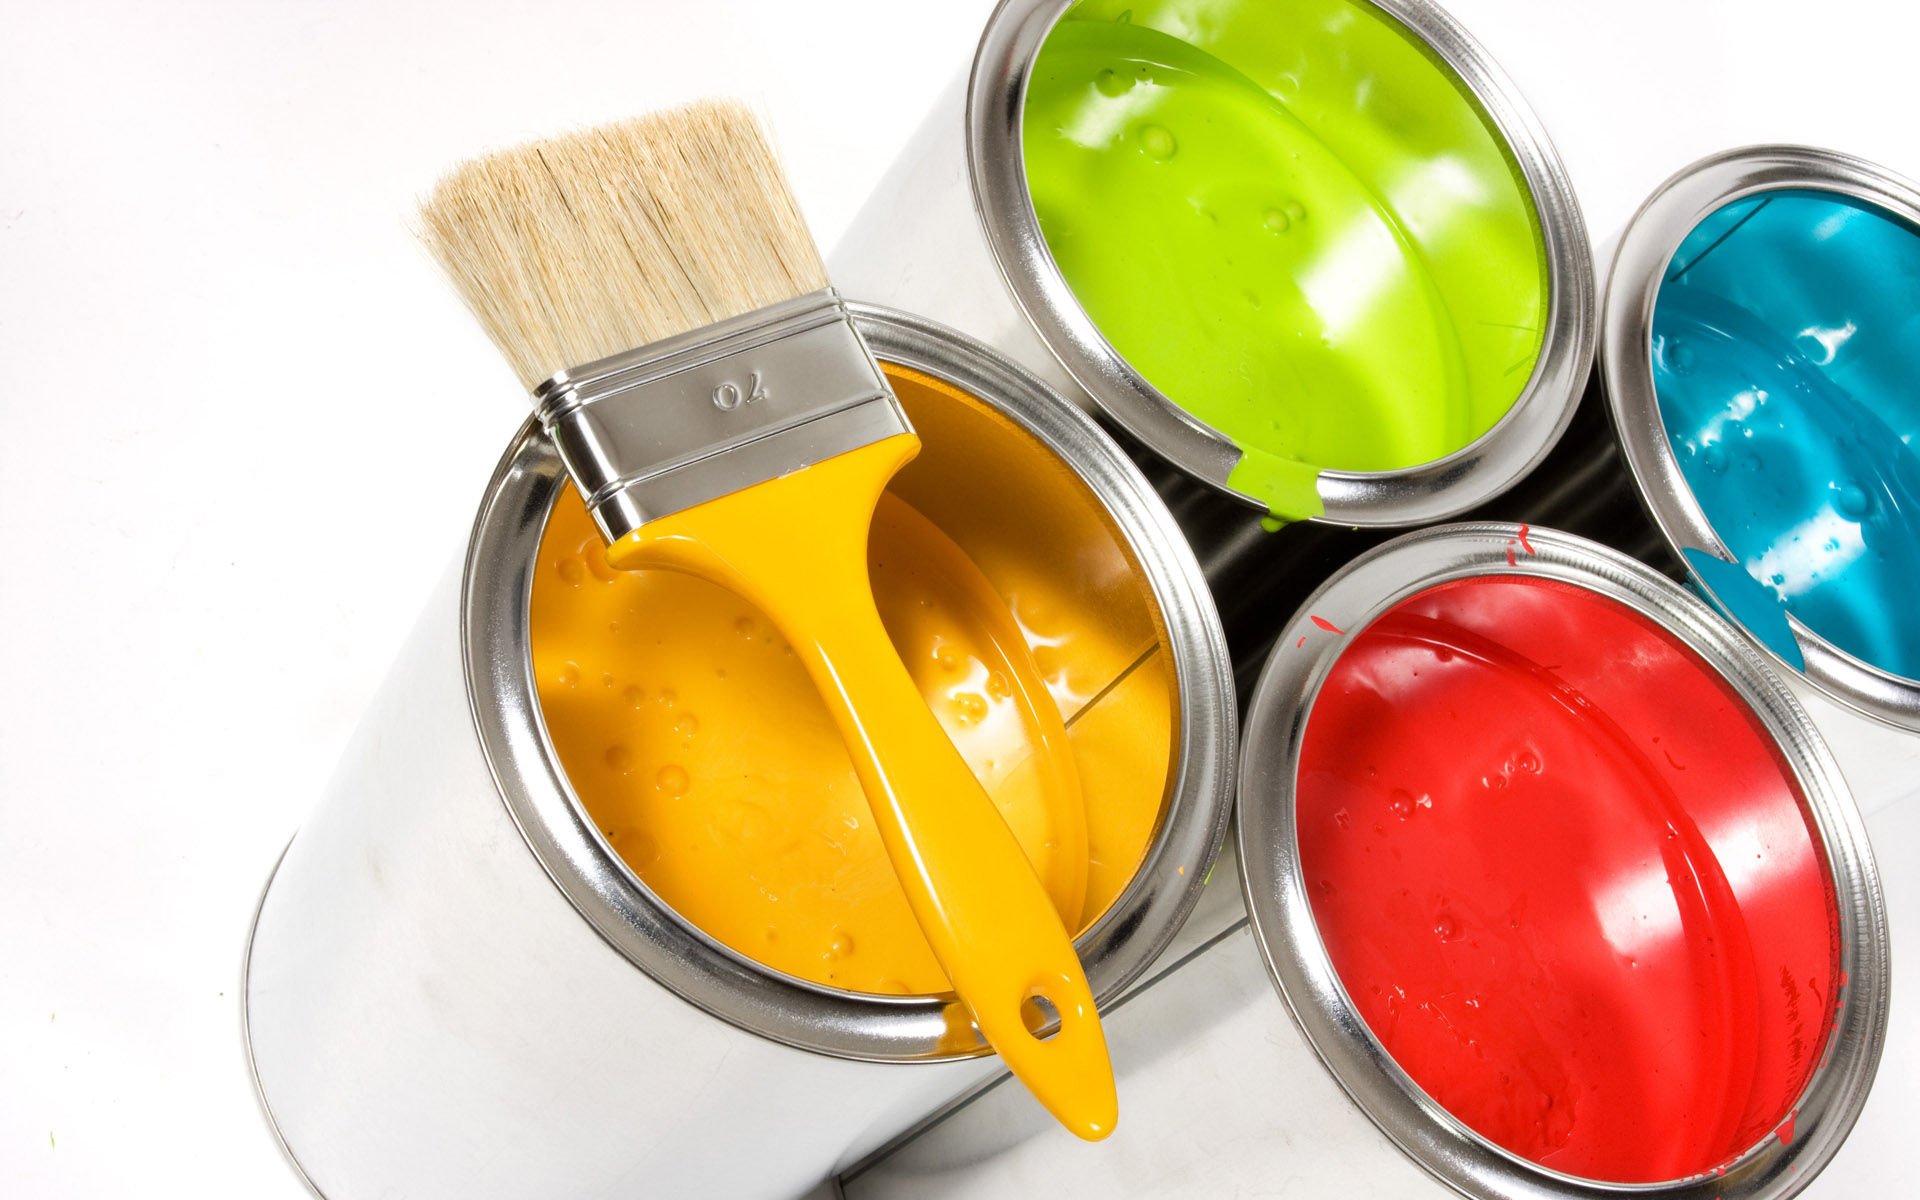 5 Useful Painting Tips: An Interview with Sue Green of Carolina Paint & Repair